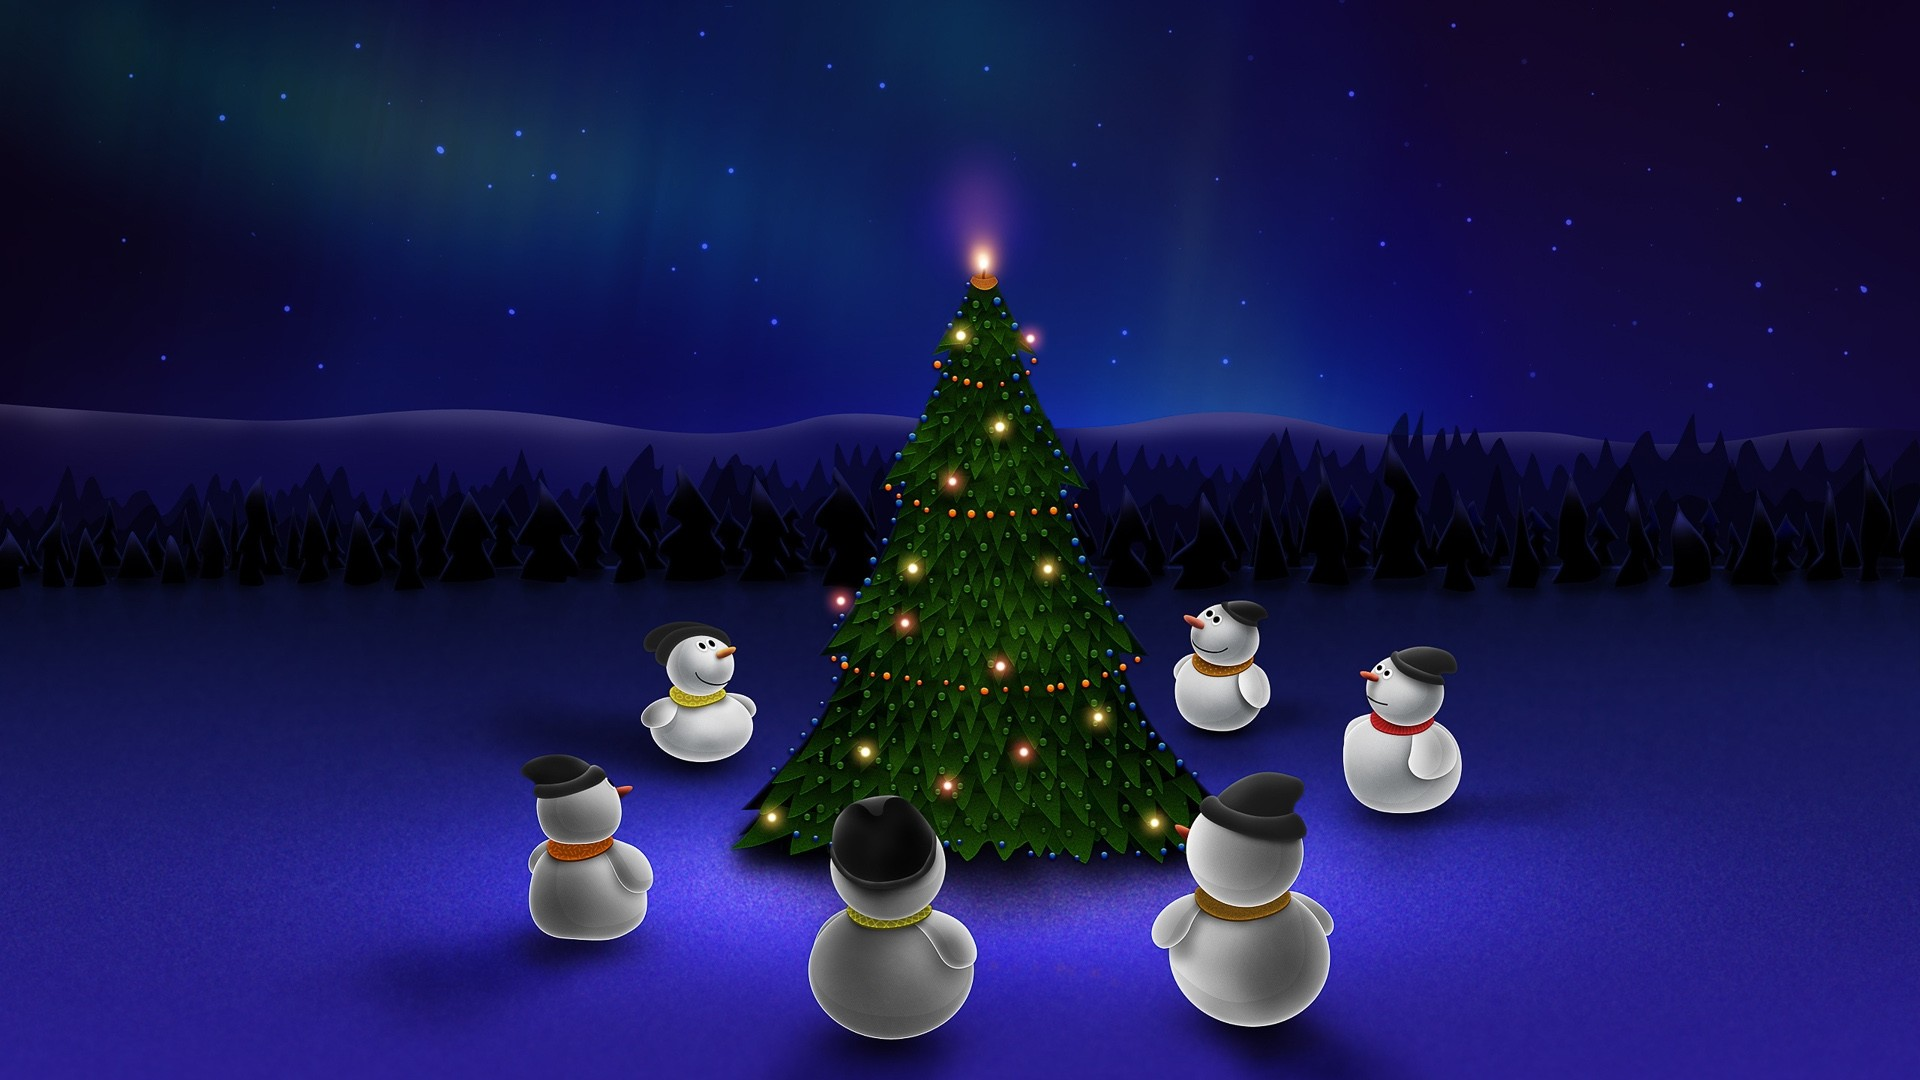 Animated Christmas Wallpapers for Desktop 56 images 1920x1080